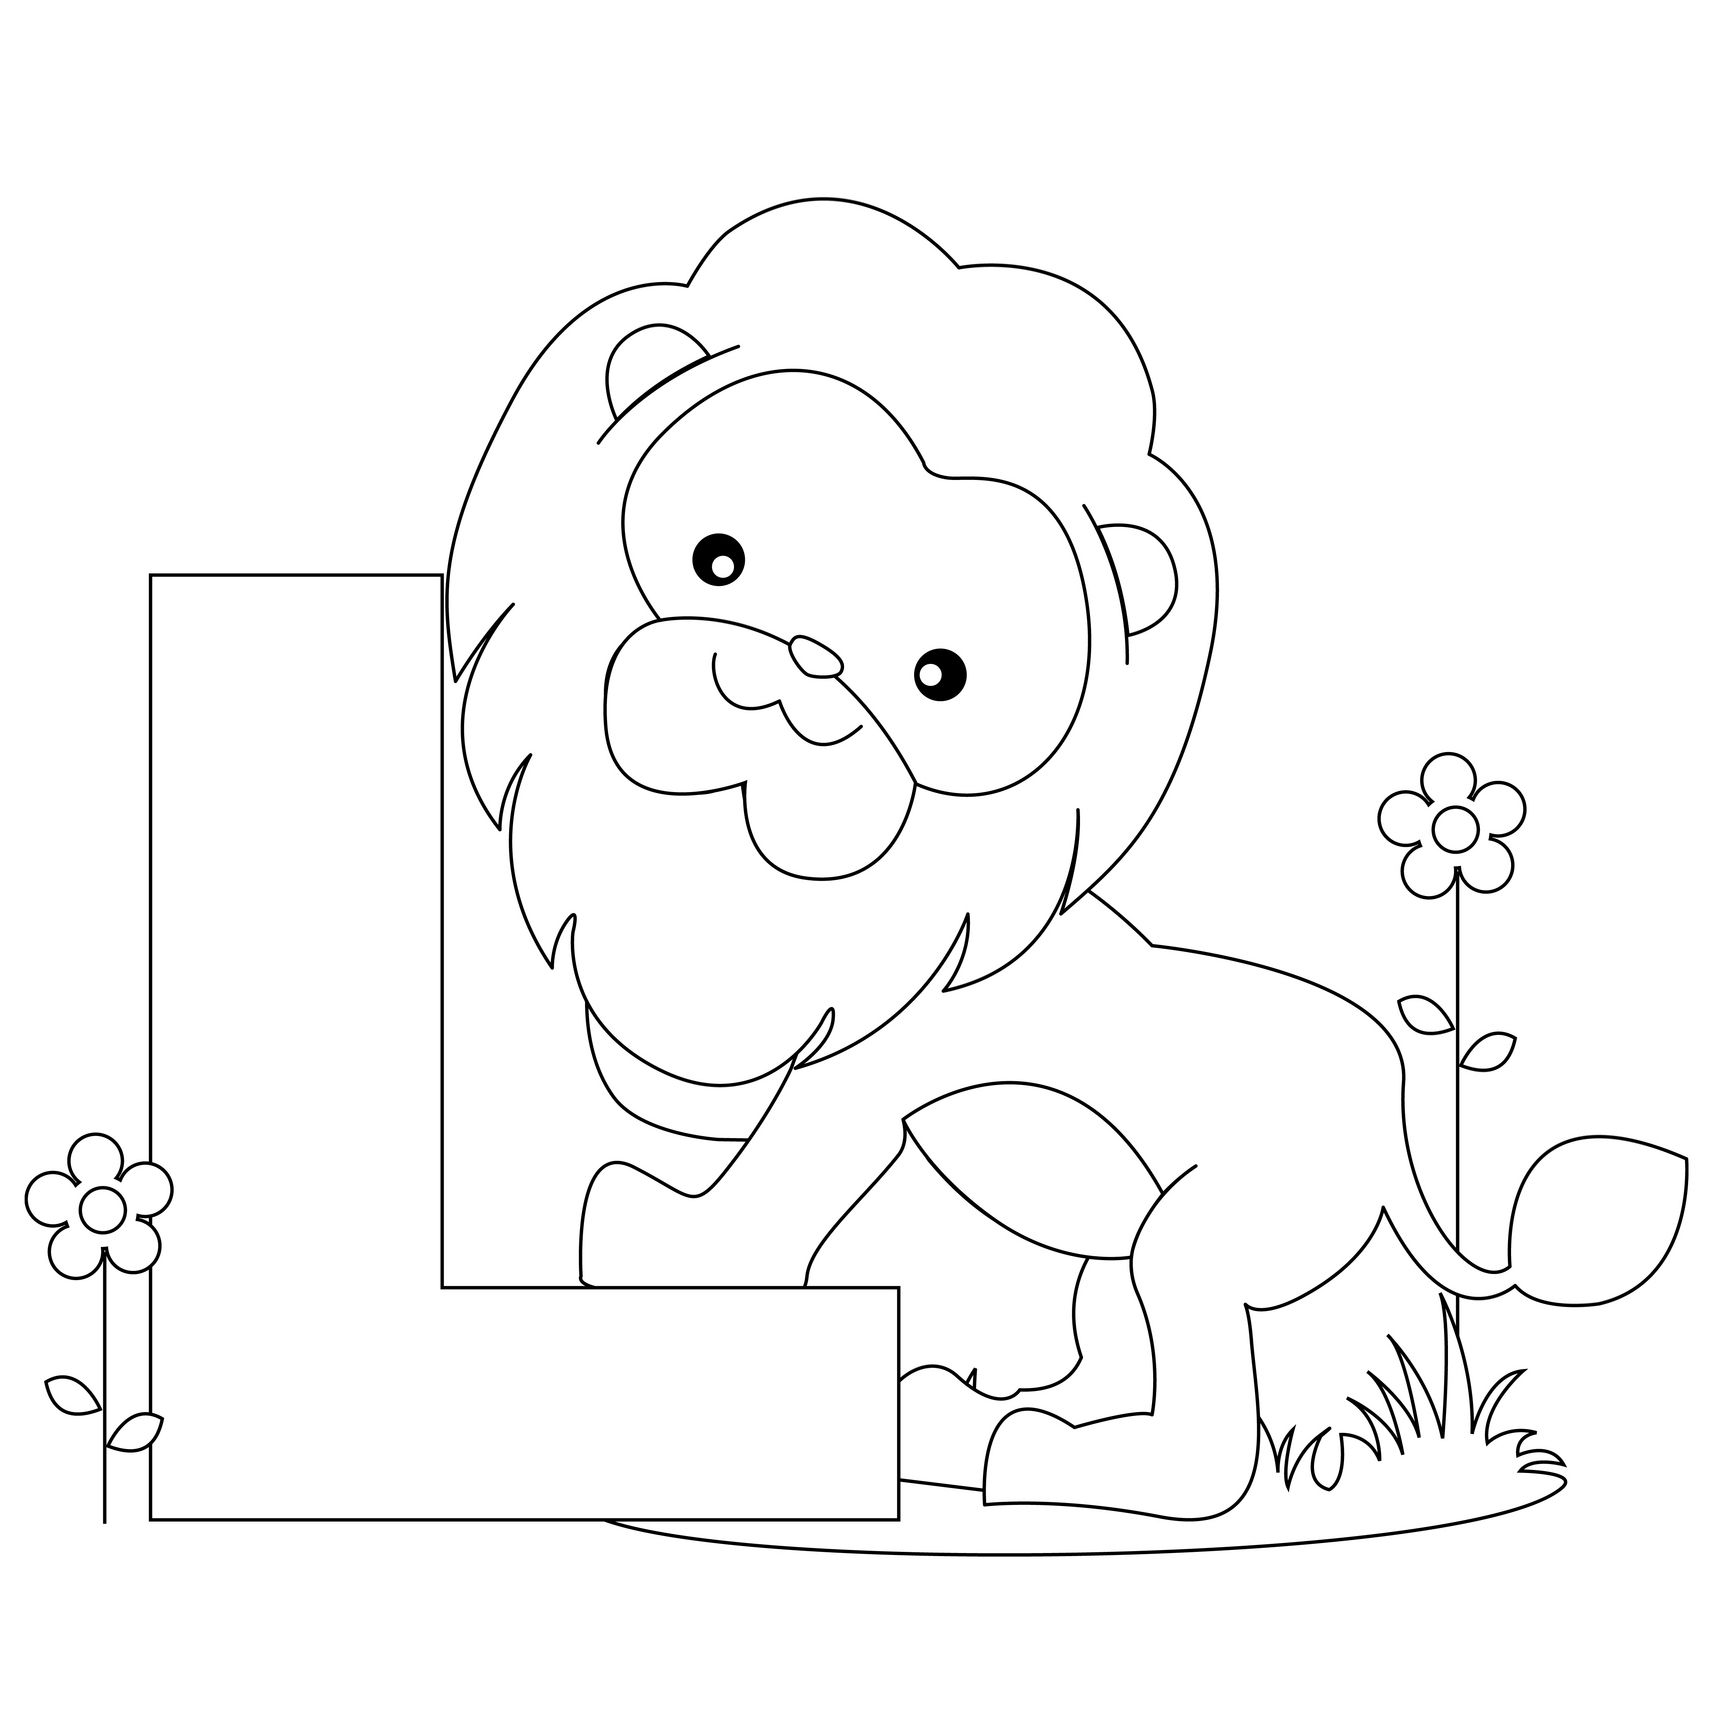 Image Detail For Animal Alphabet Letter L Coloring Worksheet And Song